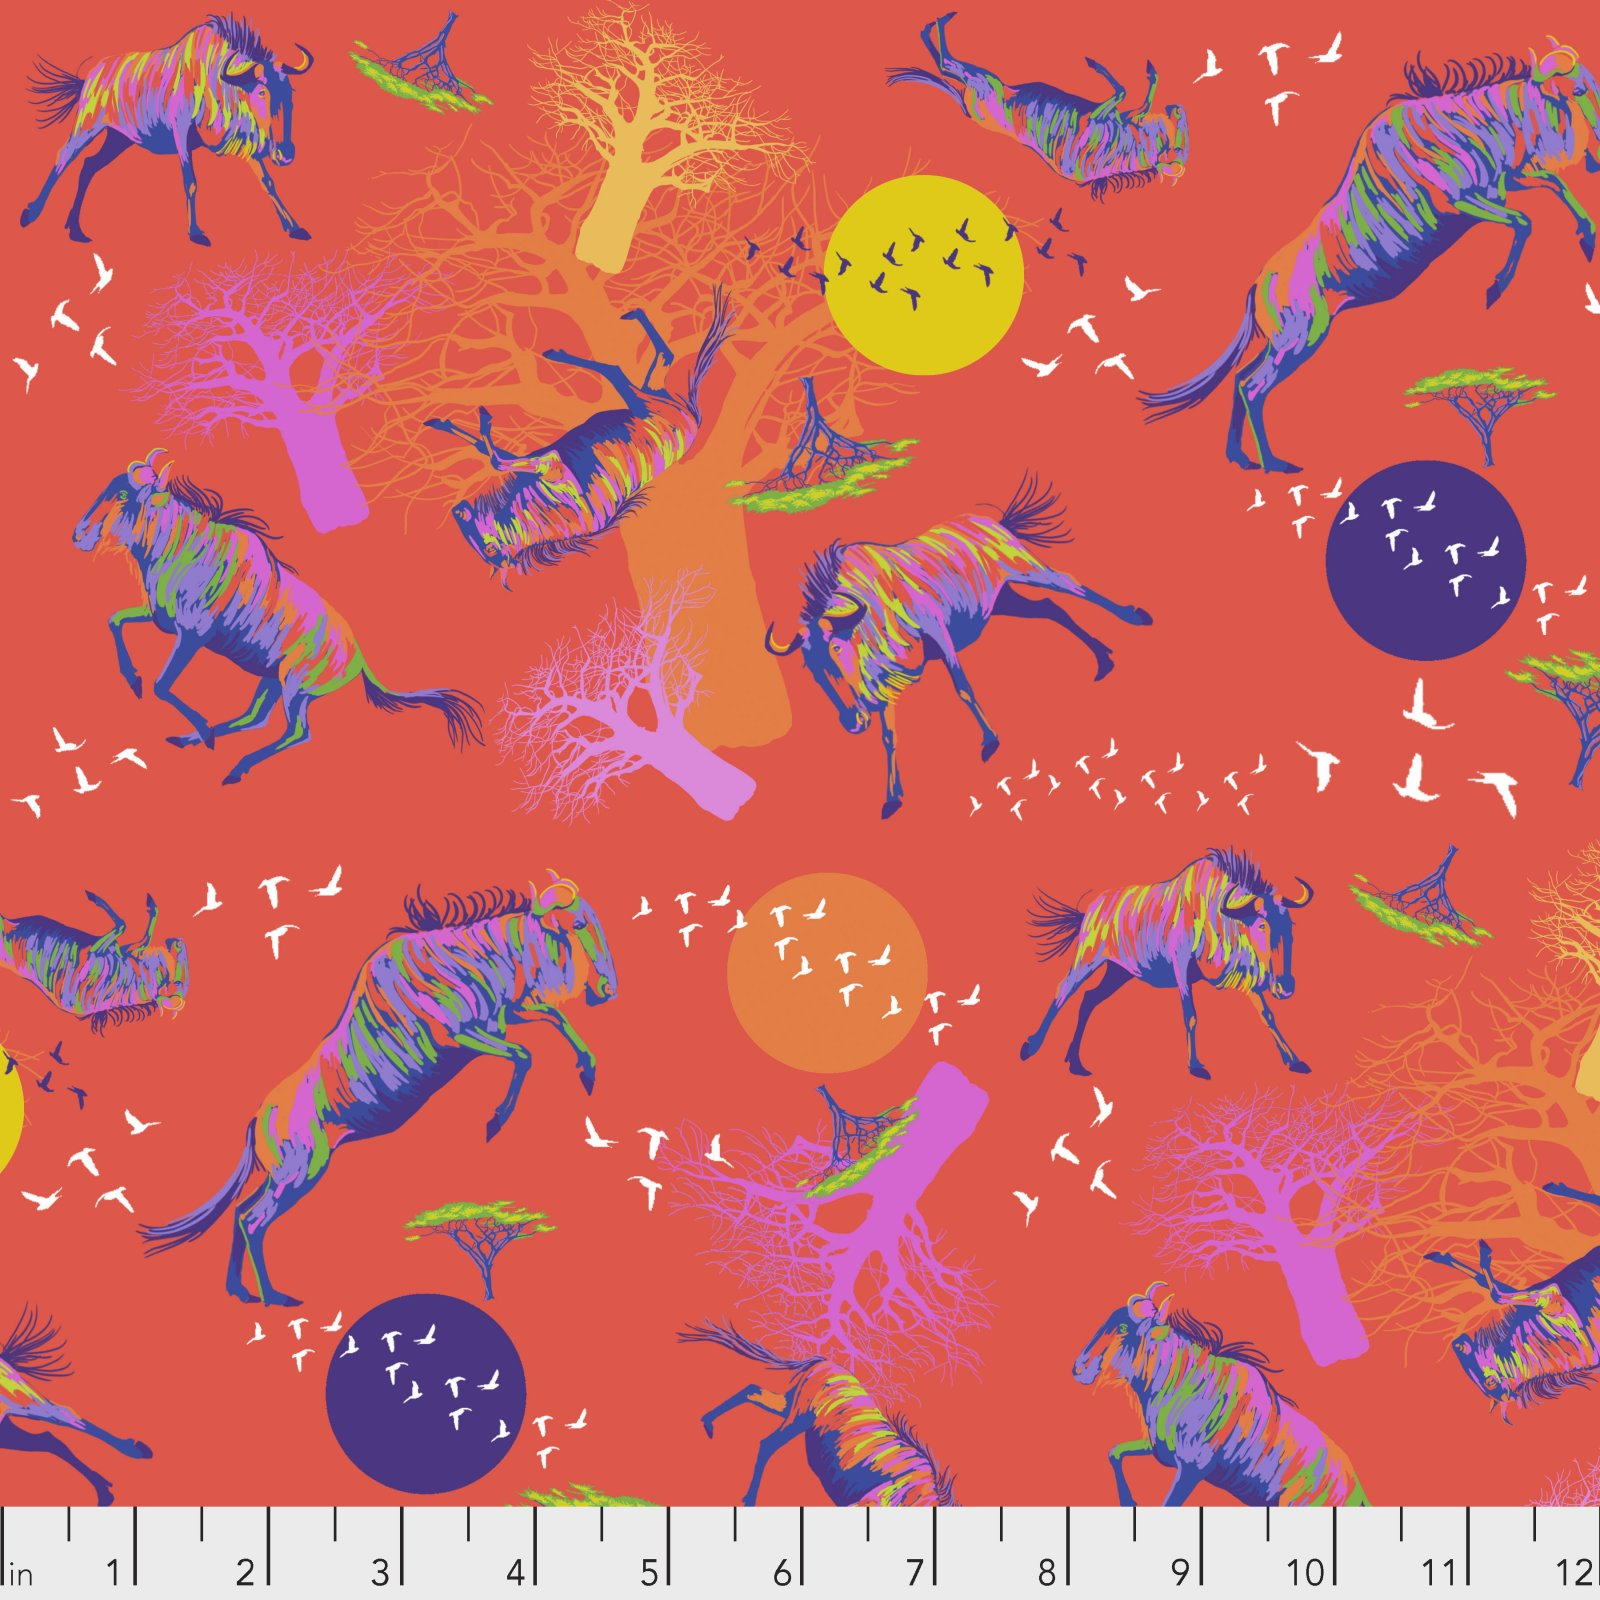 PWLT014.RED - Free Spirit Migration Widlebeests in Motion - Red/Multi